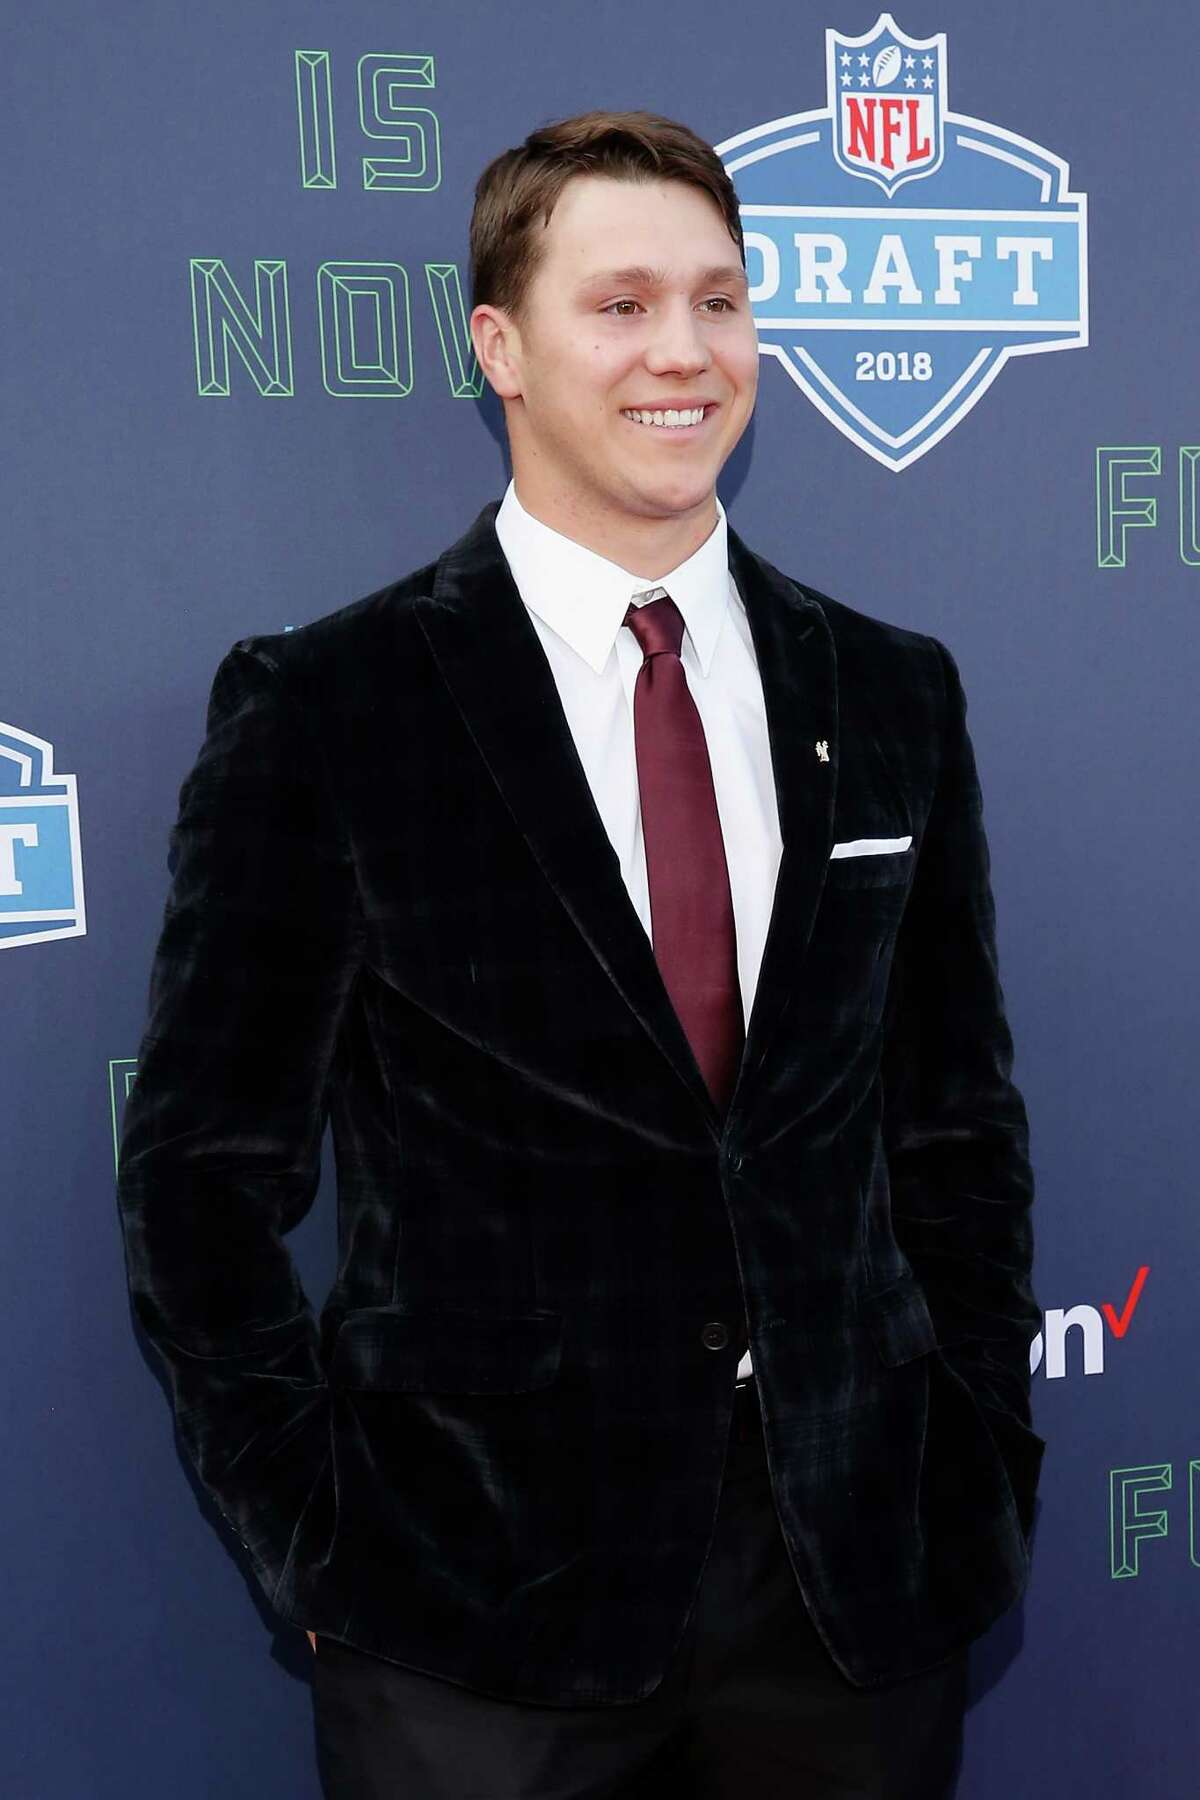 ARLINGTON, TX - APRIL 26: Josh Allen of Wyoming poses on the red carpet prior to the start of the 2018 NFL Draft at AT&T Stadium on April 26, 2018 in Arlington, Texas. (Photo by Tim Warner/Getty Images)